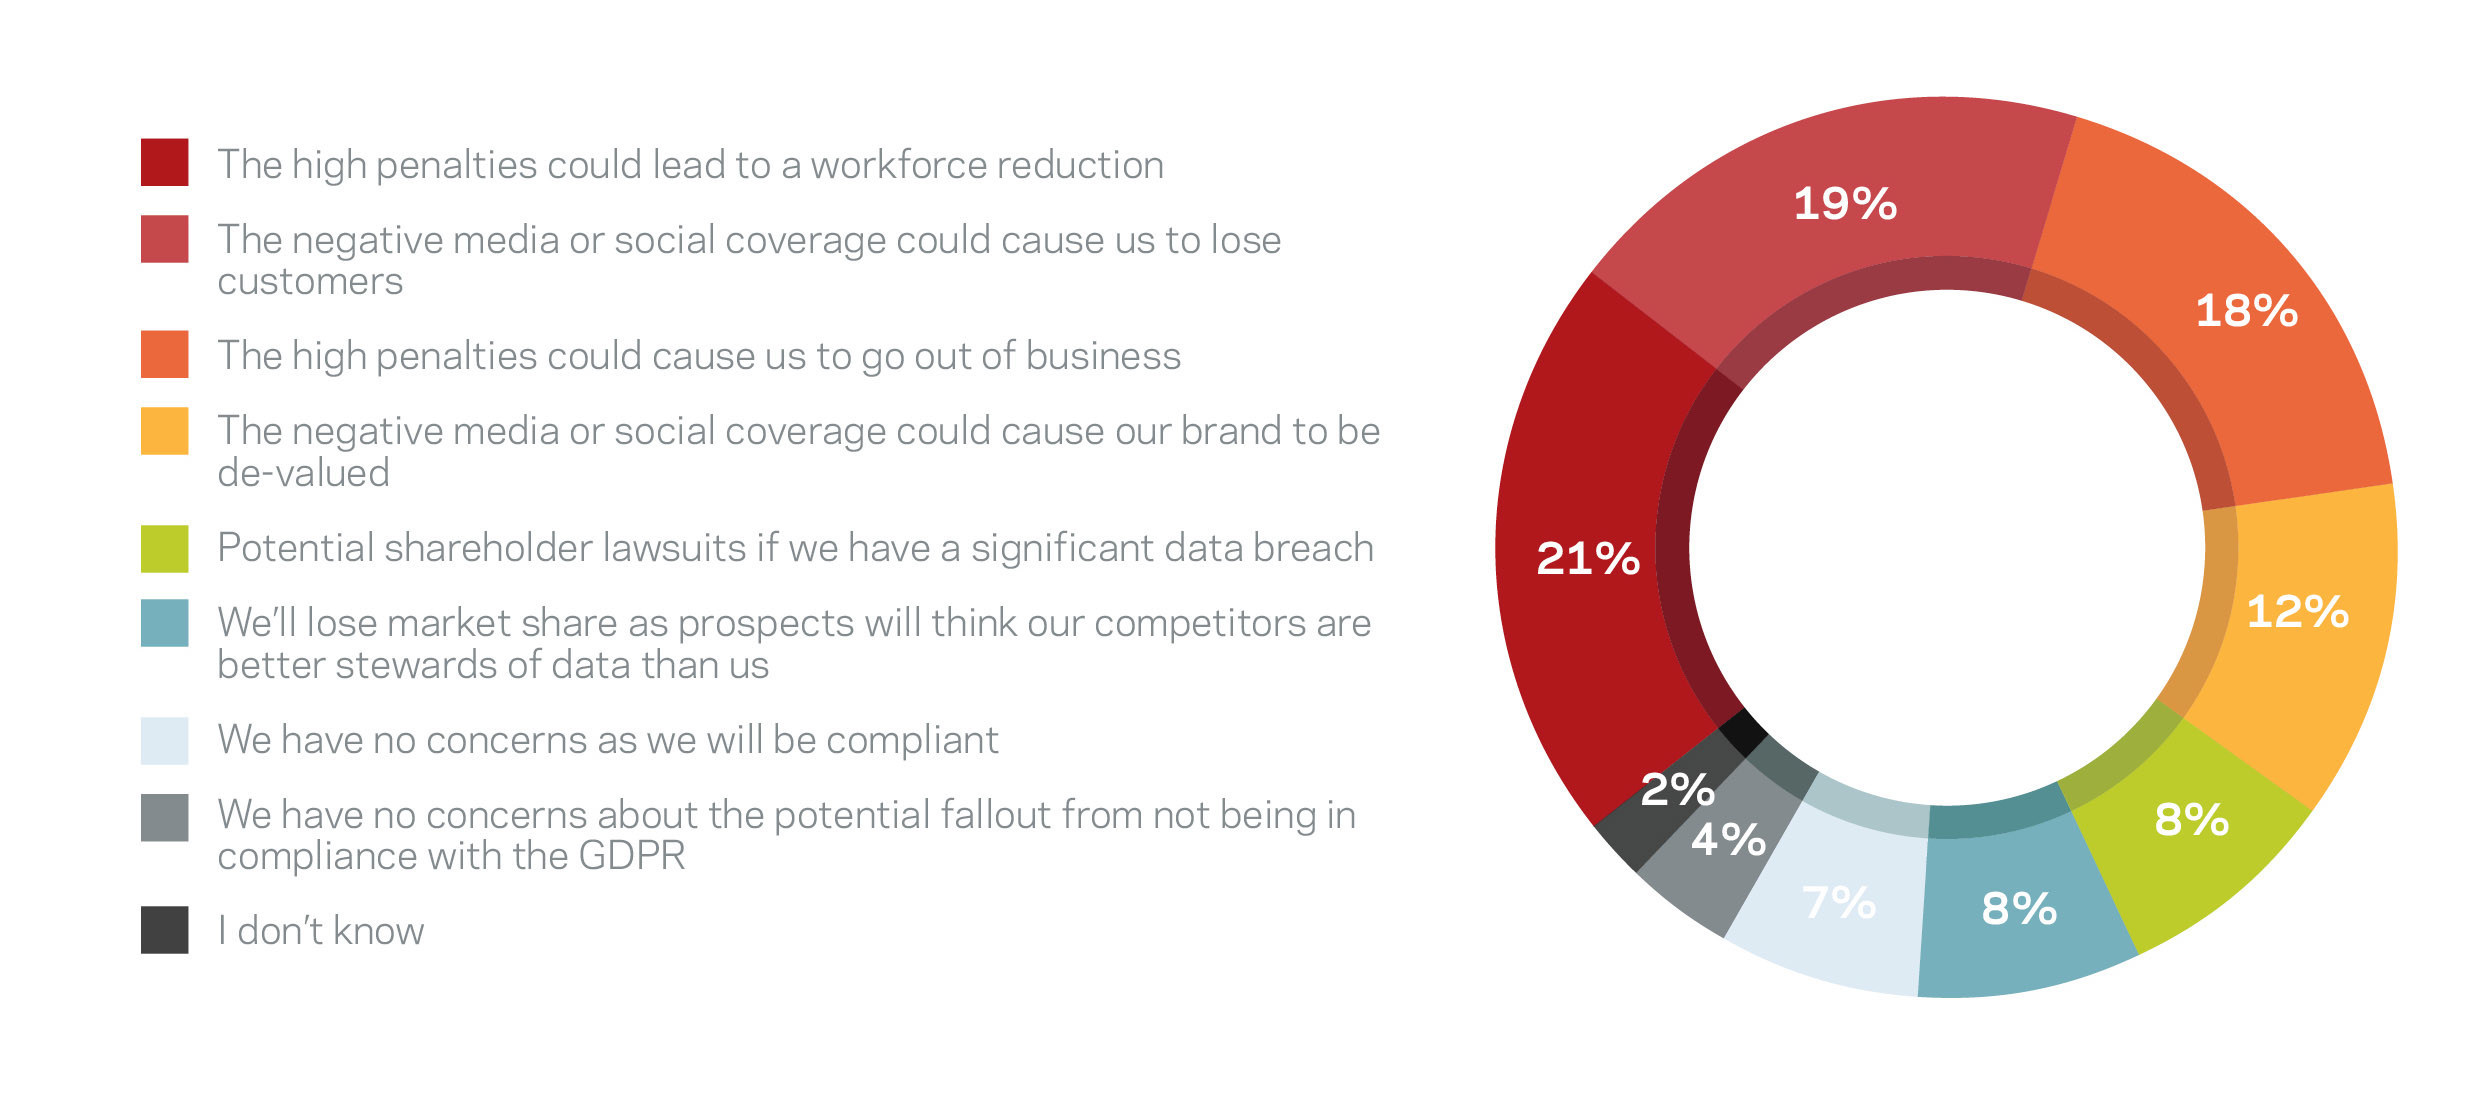 """Figure 1: """"What concerns you the most about the potential fallout from your organization not being in compliance with the GDPR?"""